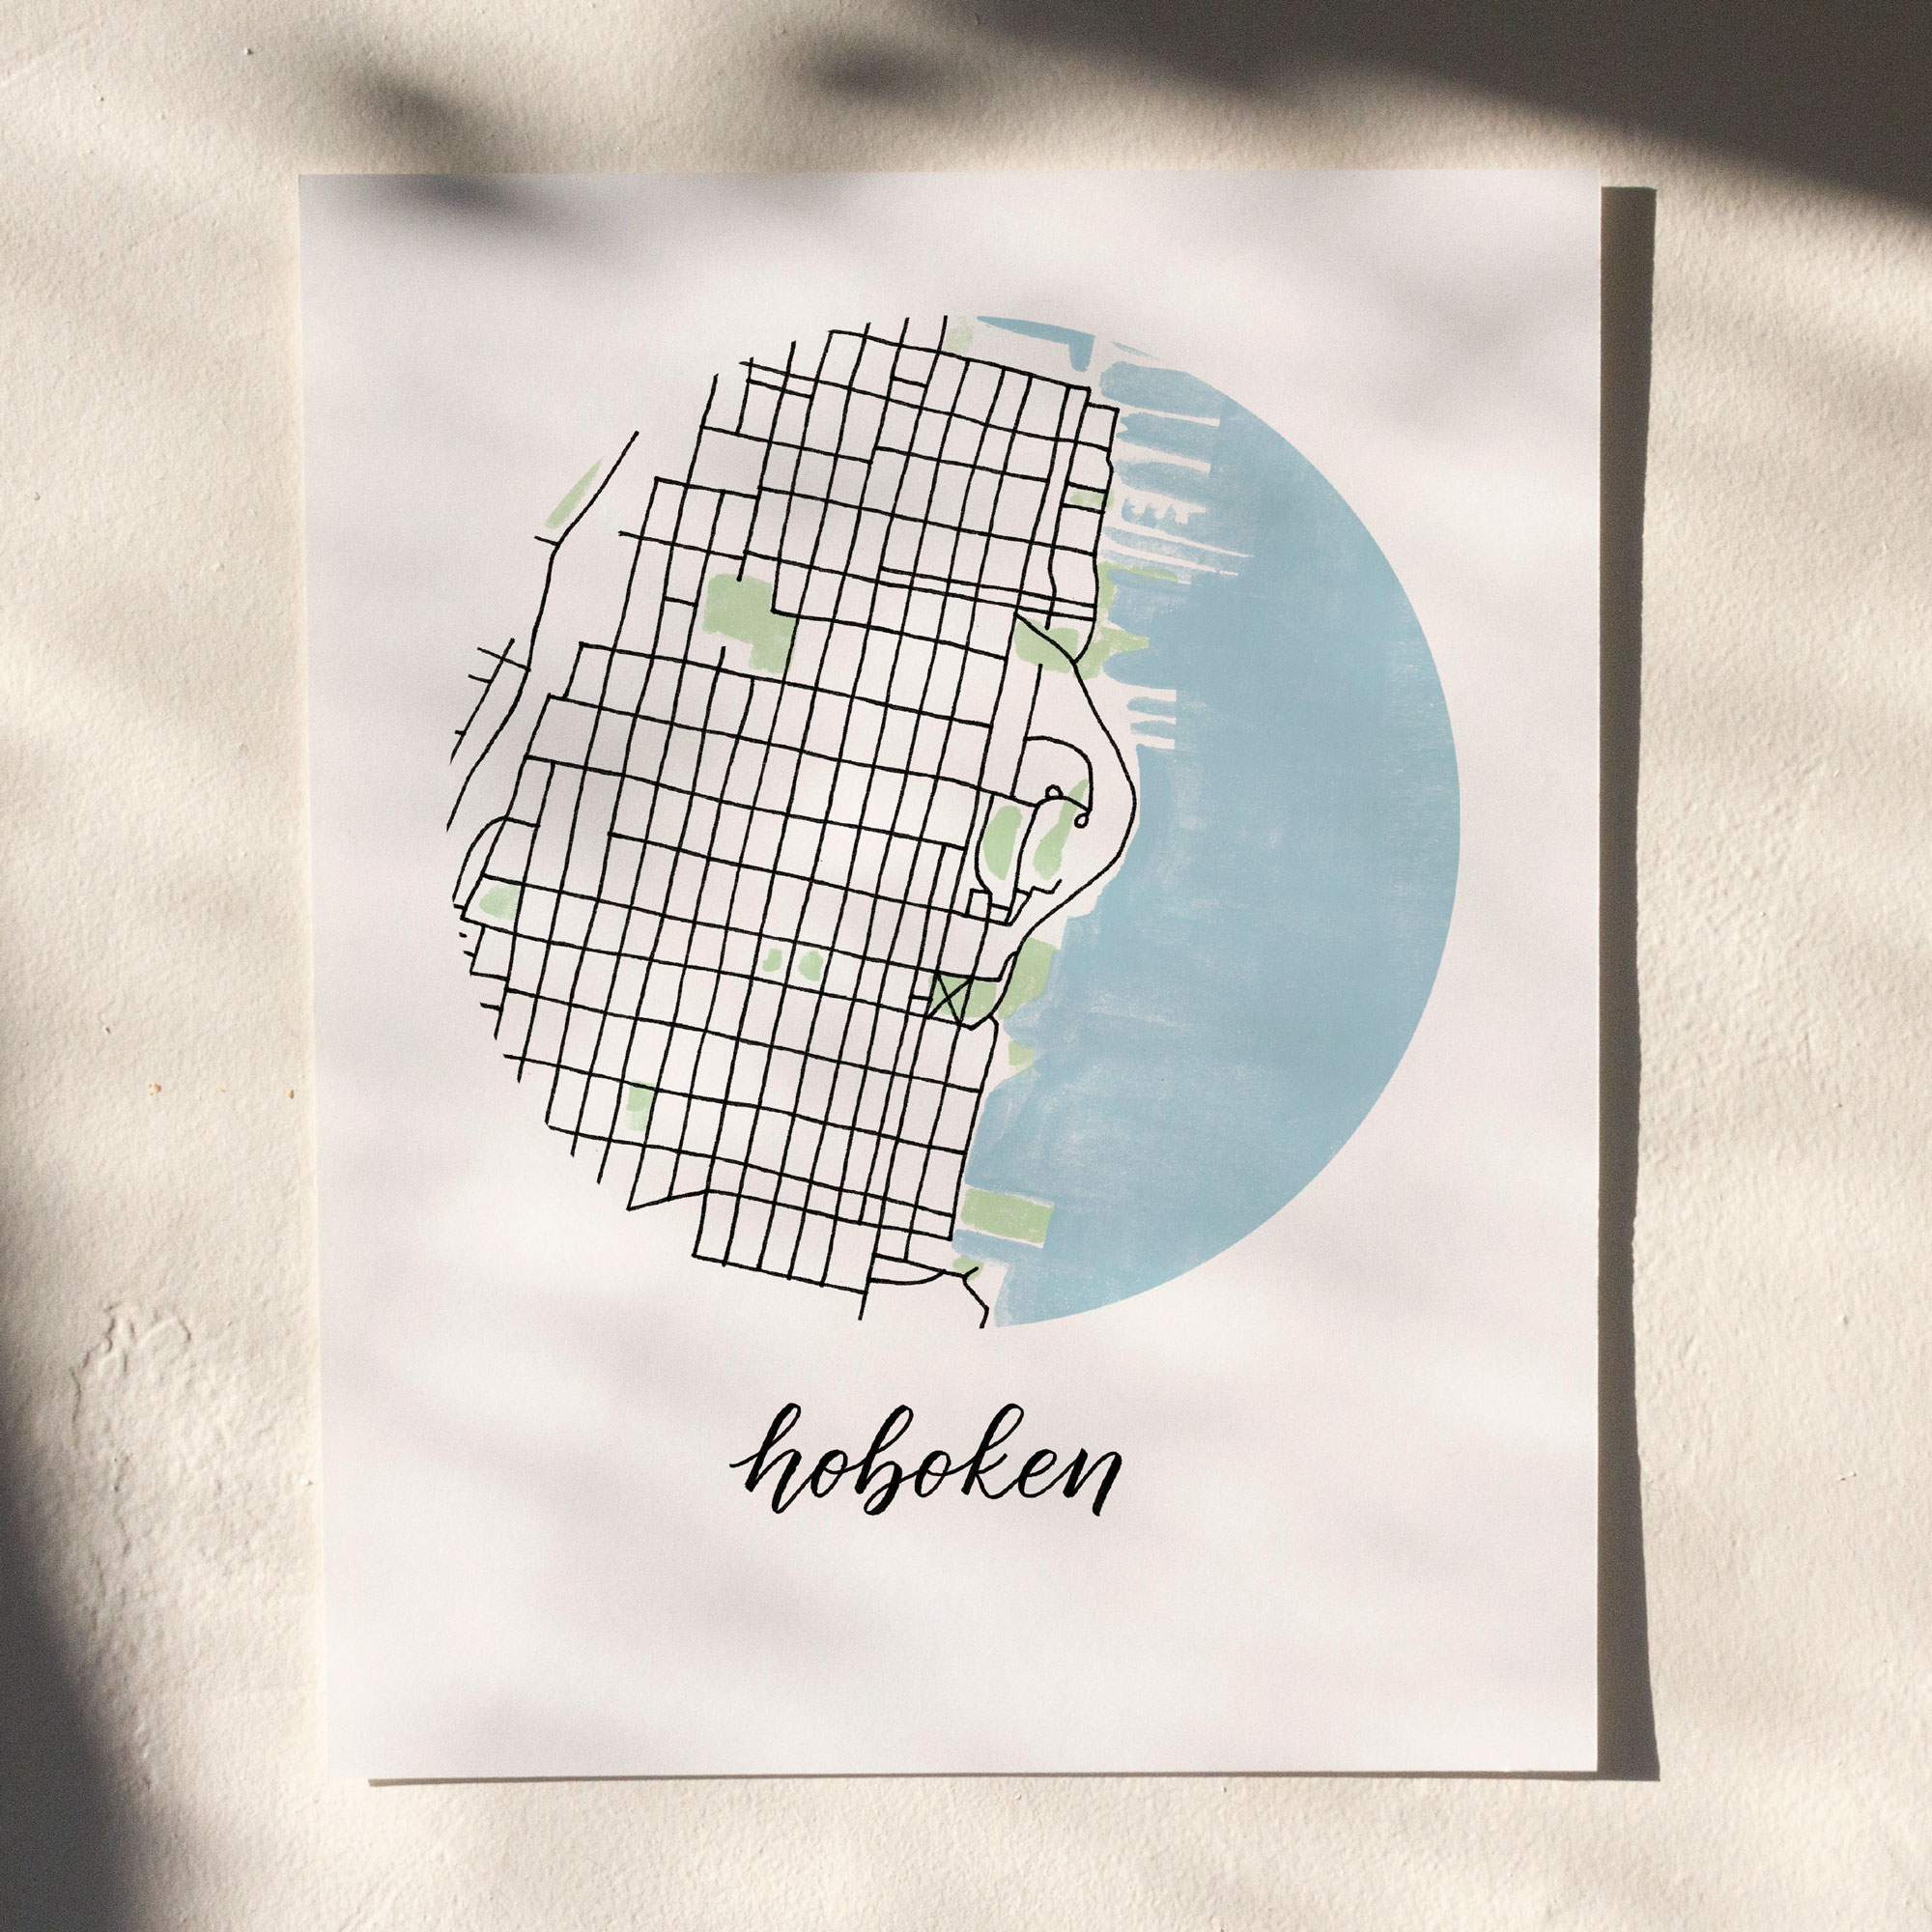 Hoboken Map Print hanging on white wall with leaf shadows across the image